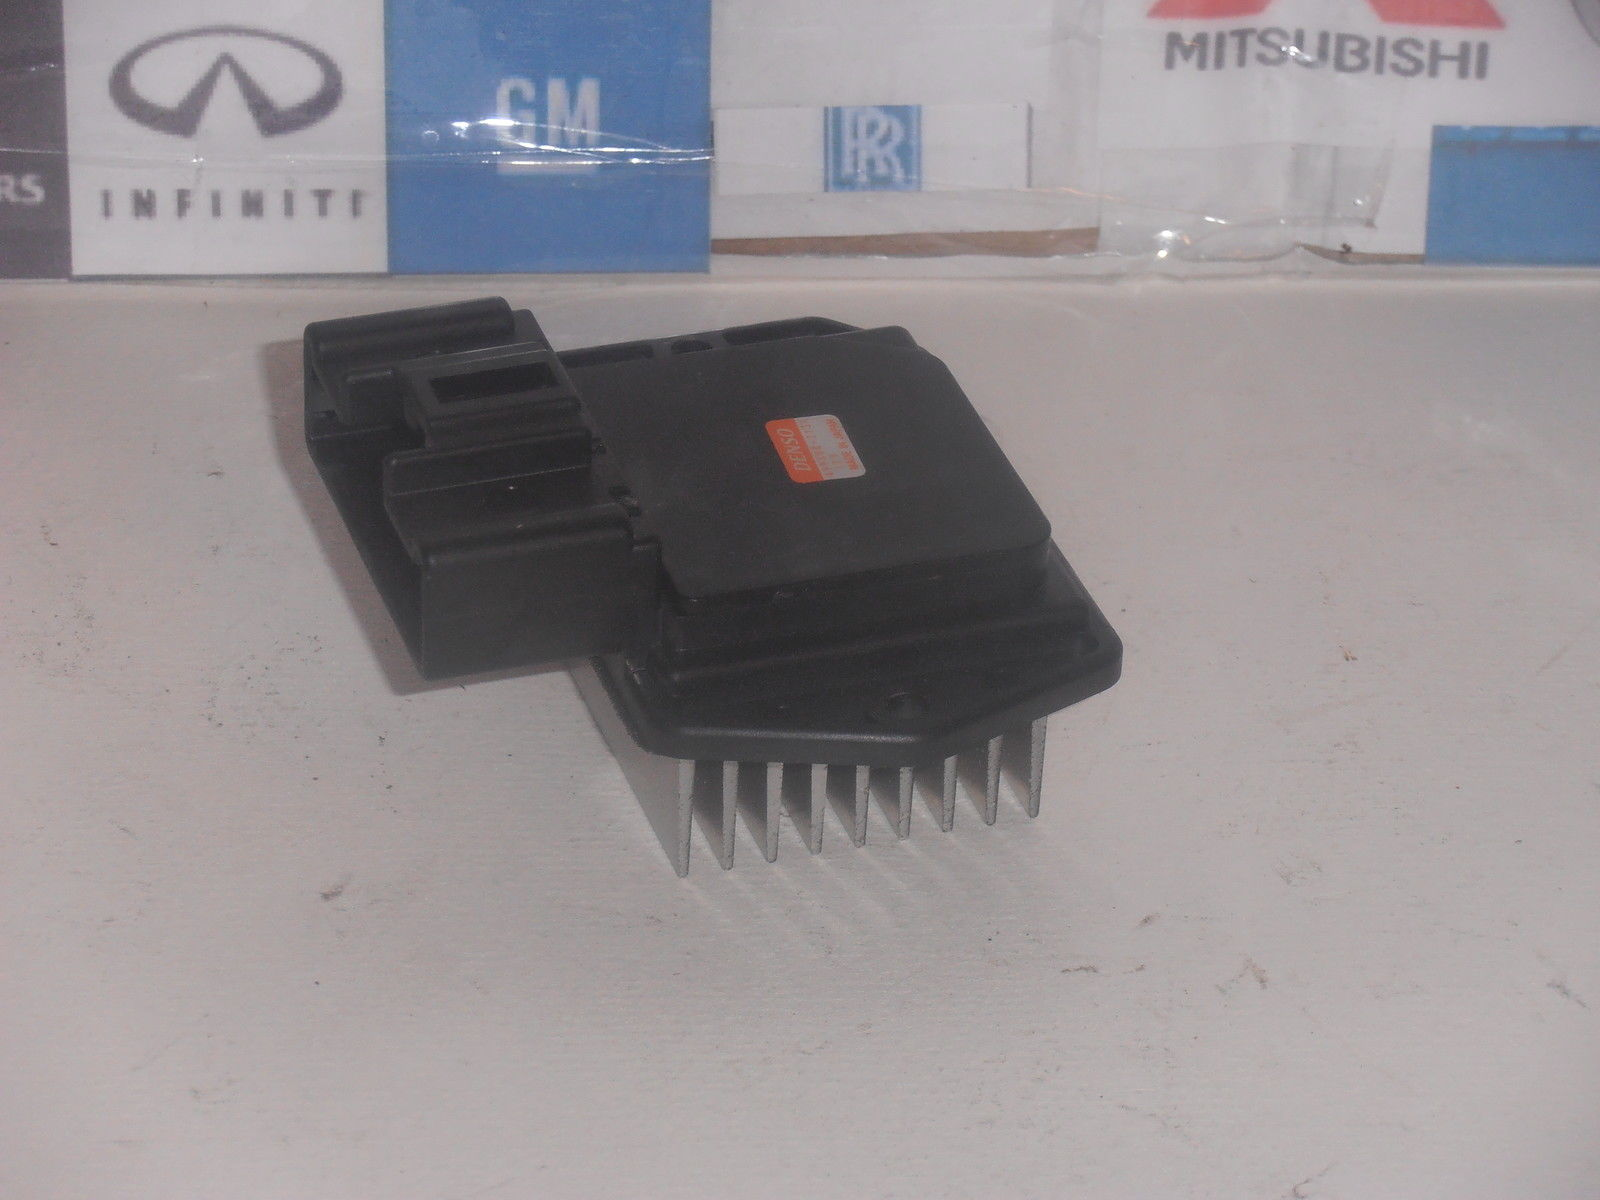 Toyota Corolla Anensis Verso T Vvti Heater Resistor Blower Denso P on toyota corolla blower motor resistor location